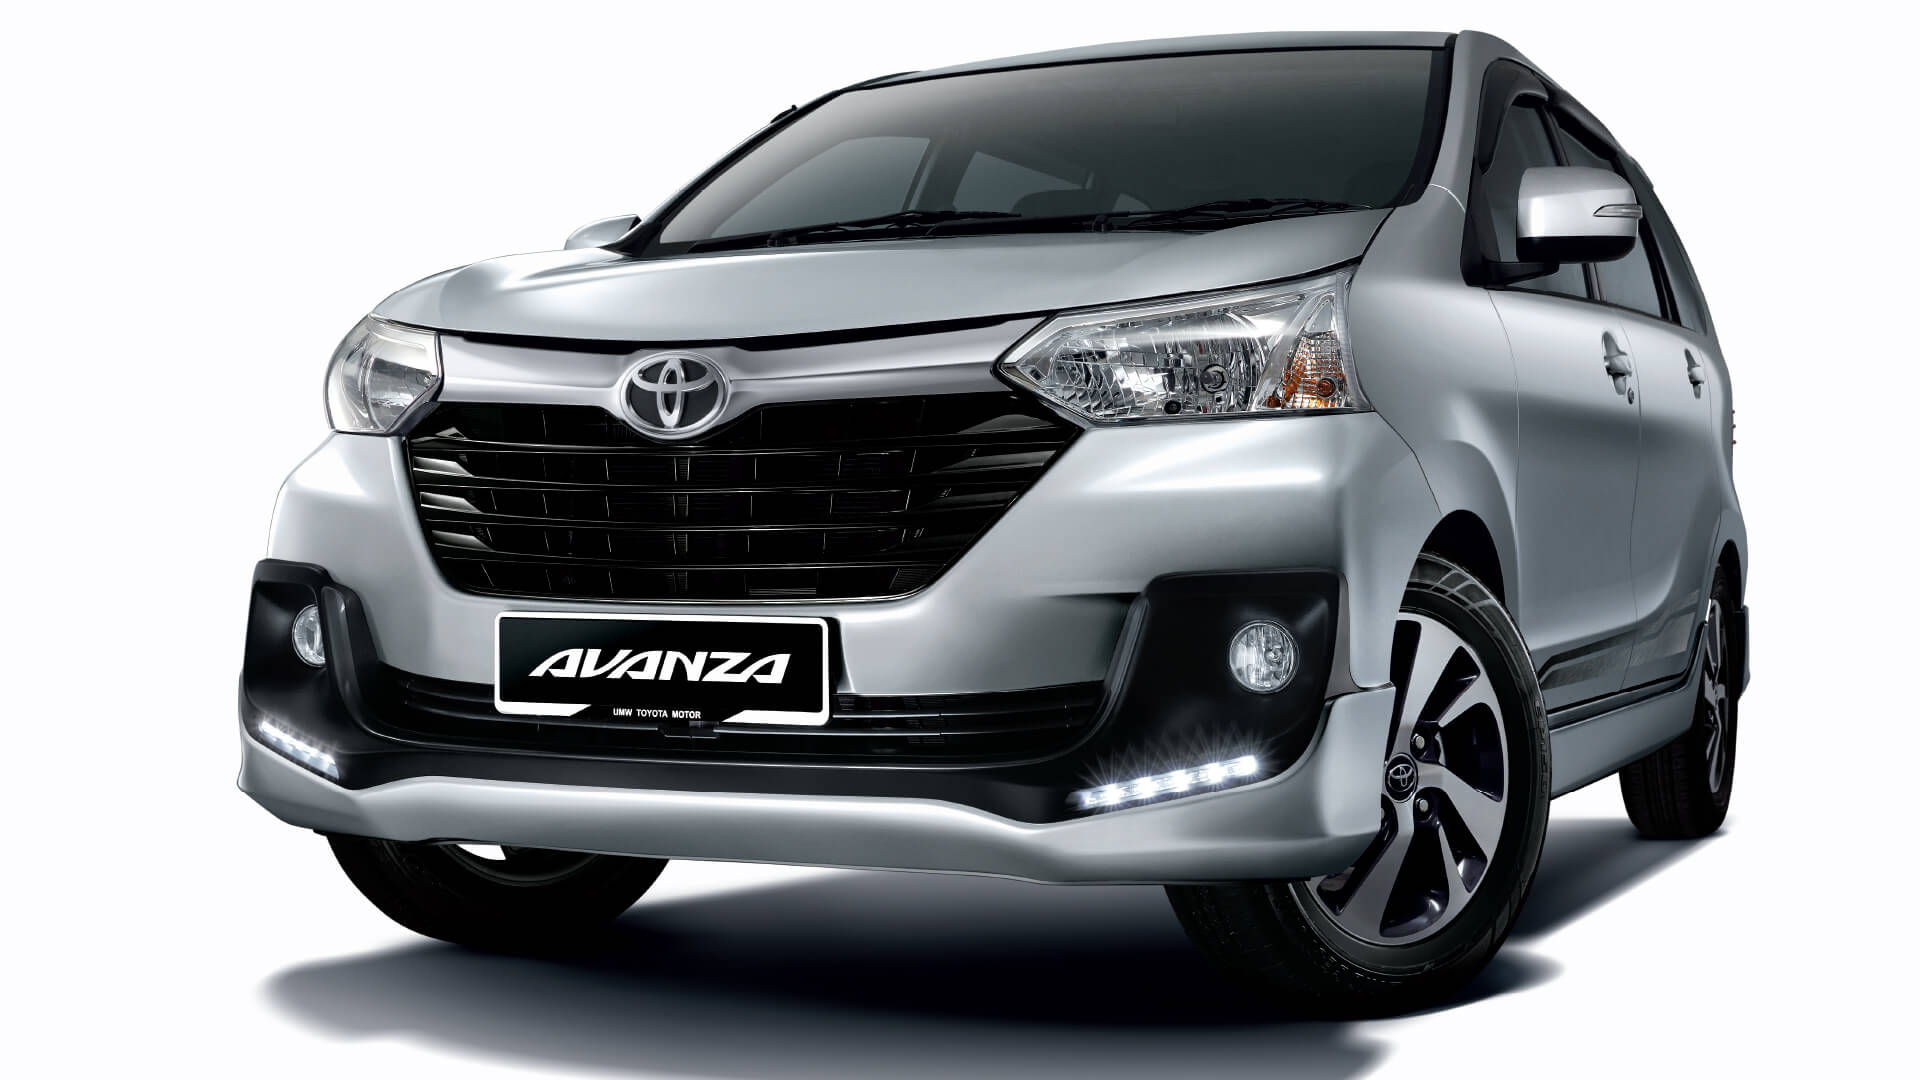 Audi Q7 Car Wallpaper Toyota Avanza Front Side View Upcoming Cars In 2018 2019